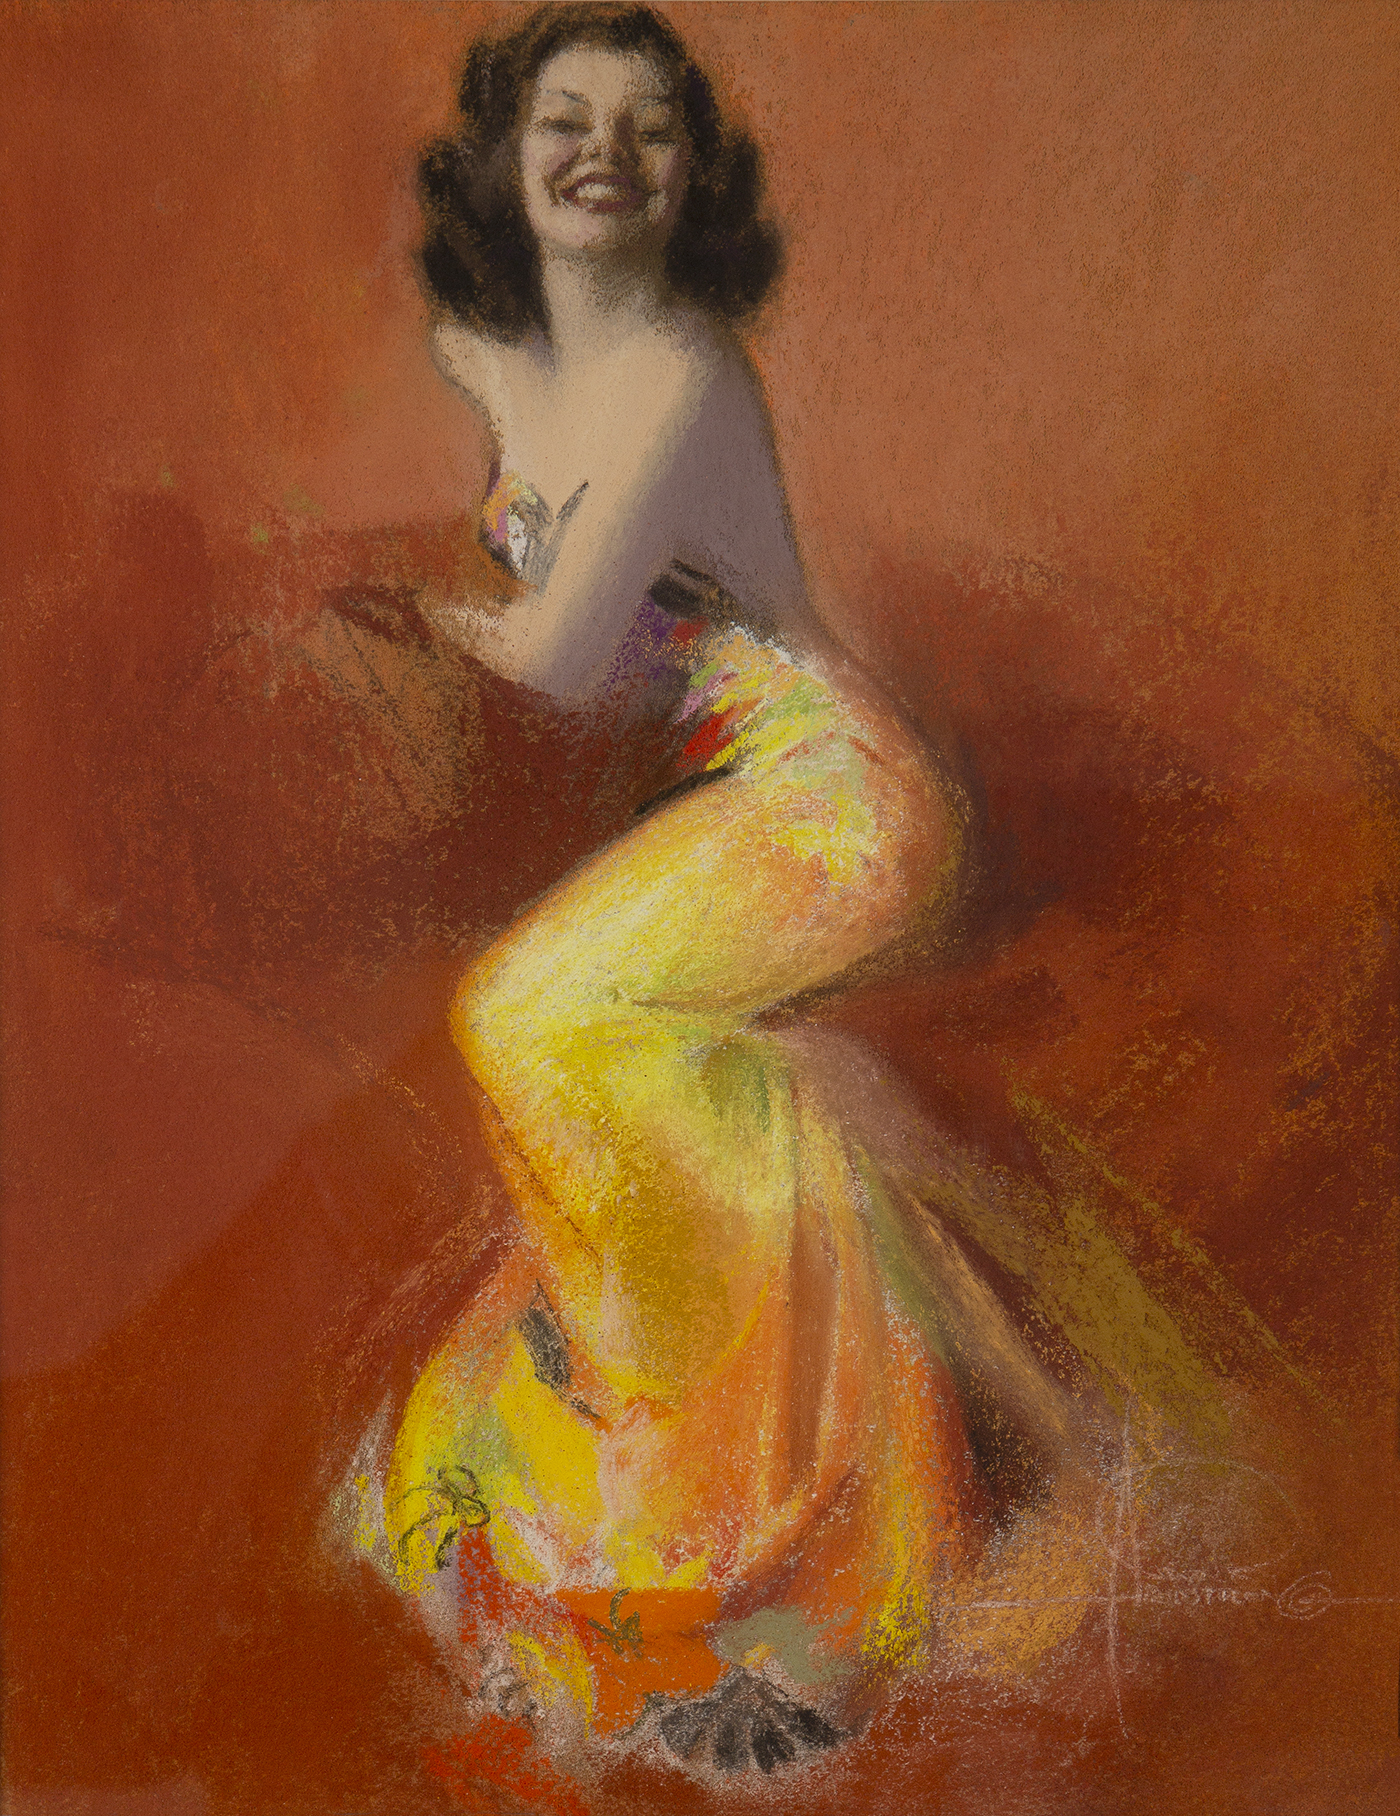 Pastel illustration of pin-up model Jewel Flowers in a yellow and orange gown, posed against a brown/orange background